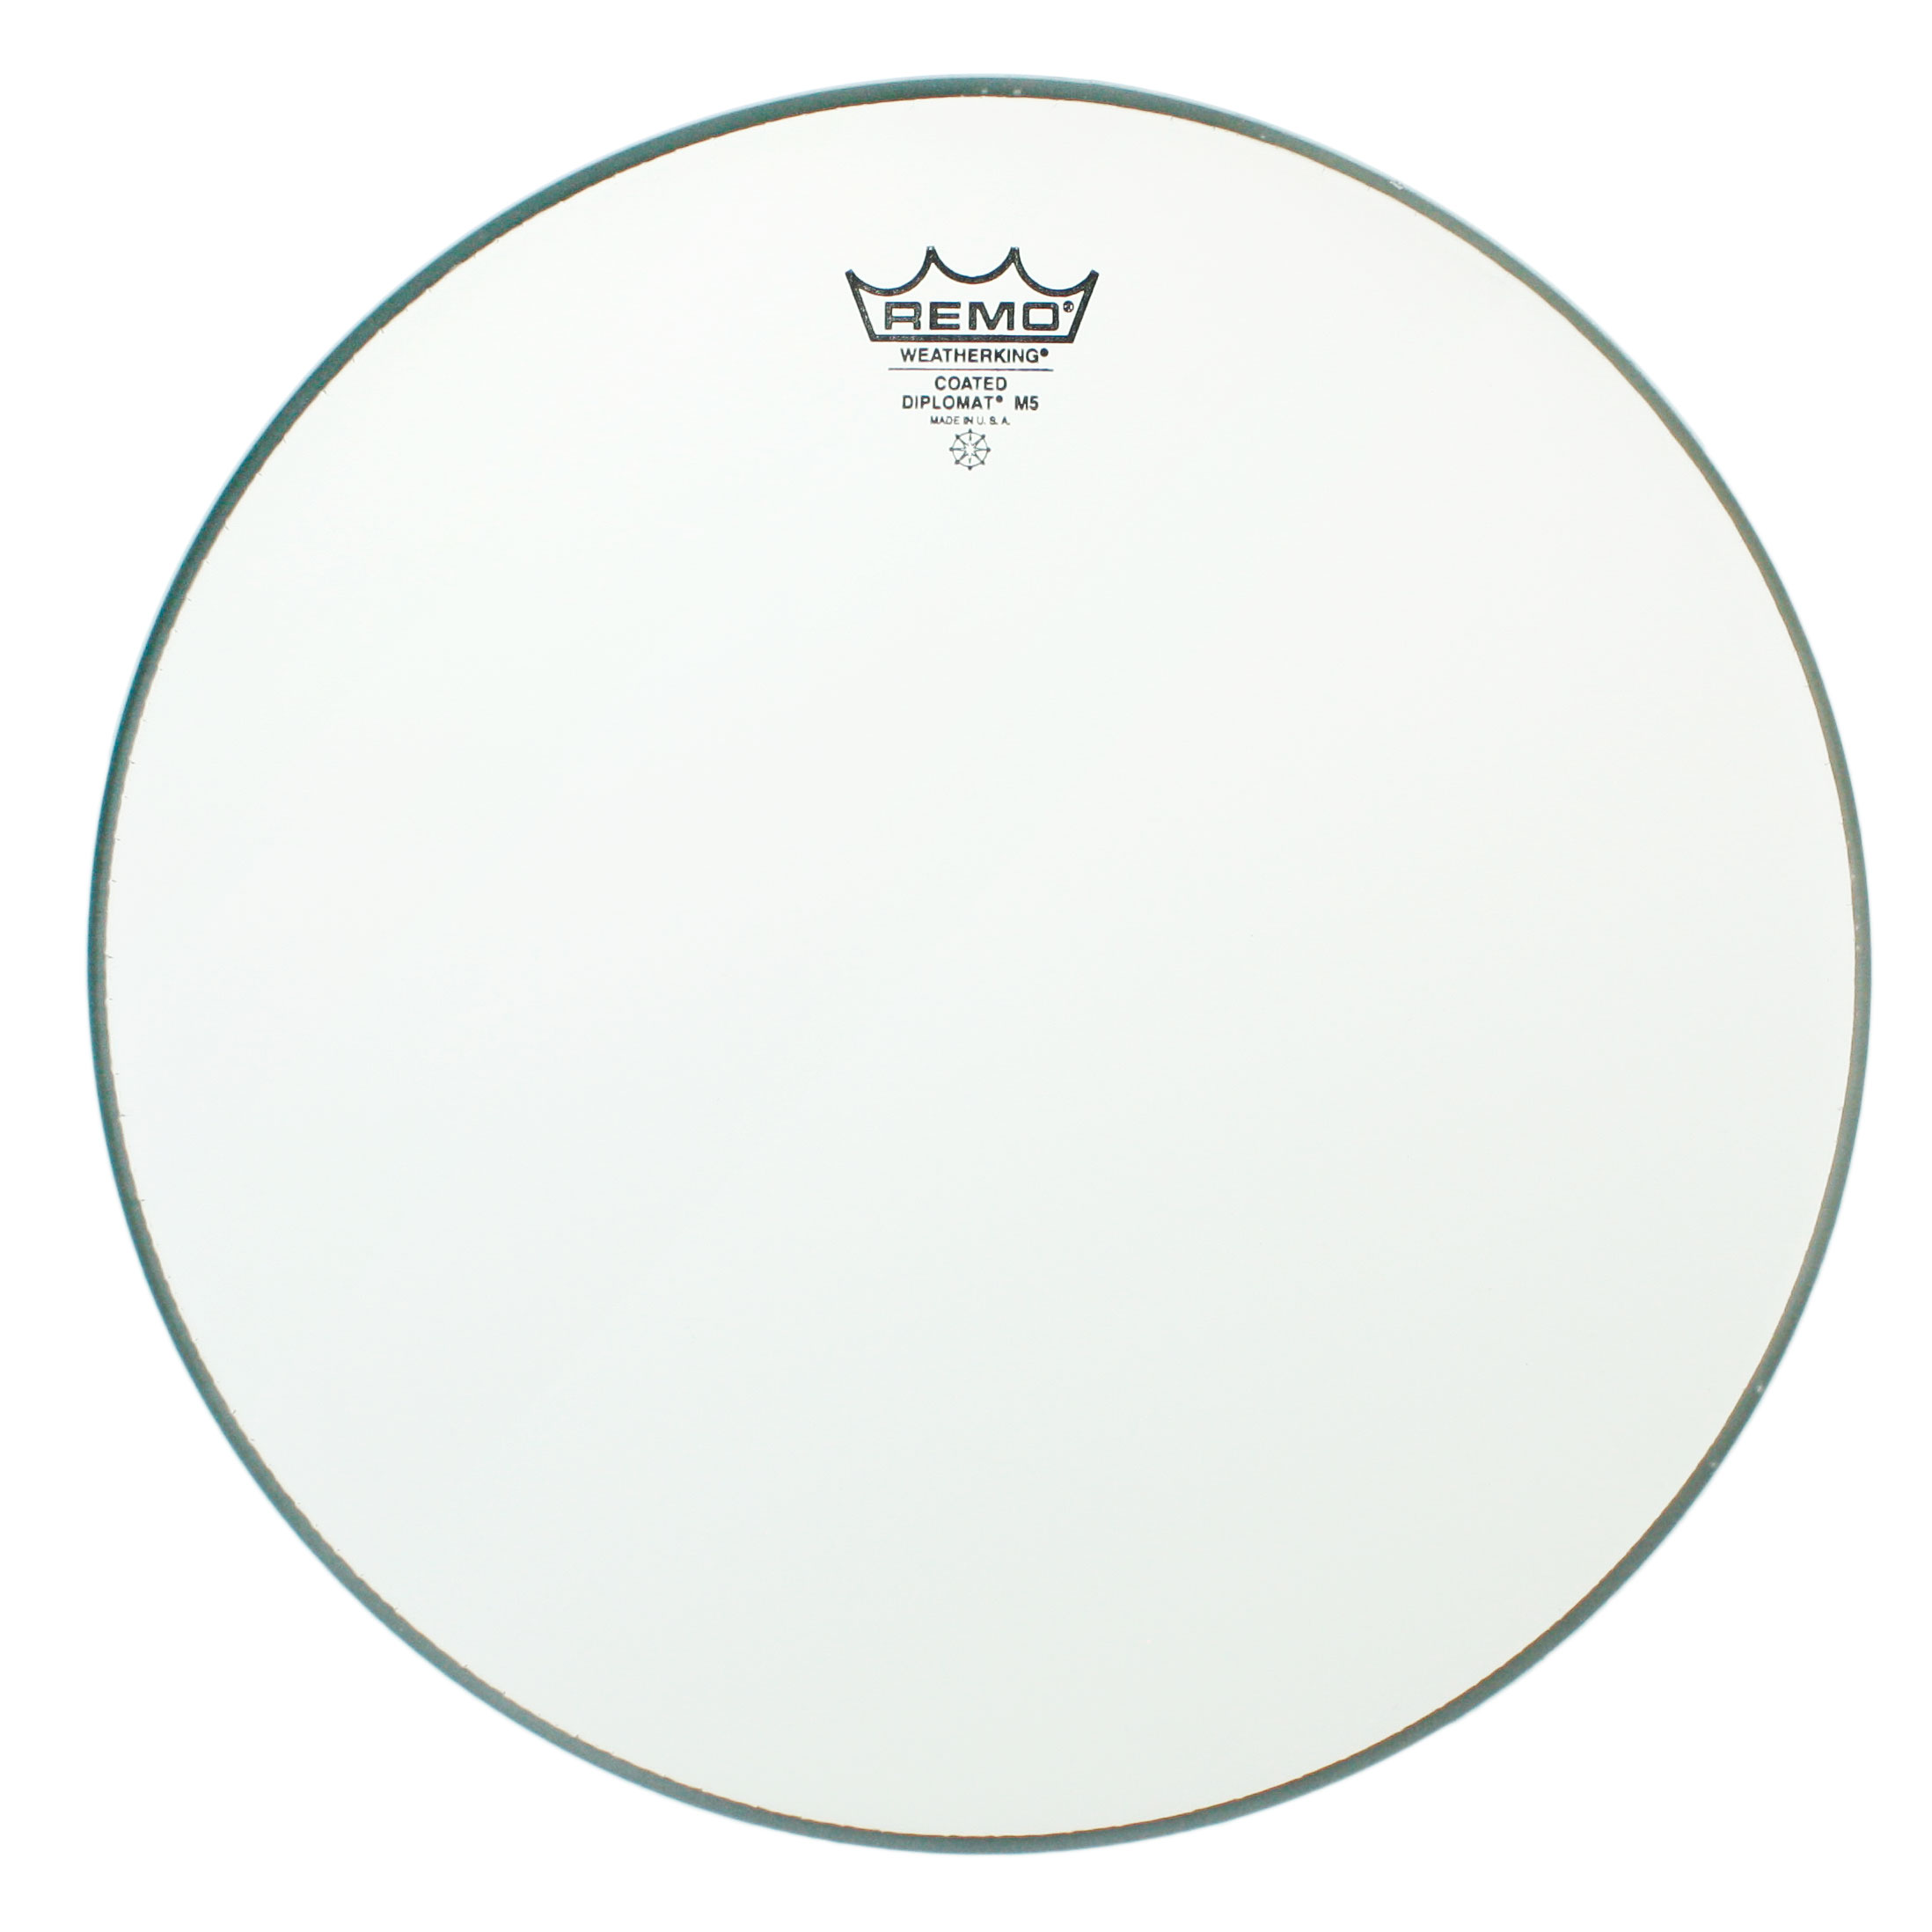 "Remo 14"" Diplomat Coated M5 Thin Concert Snare Drum Head"